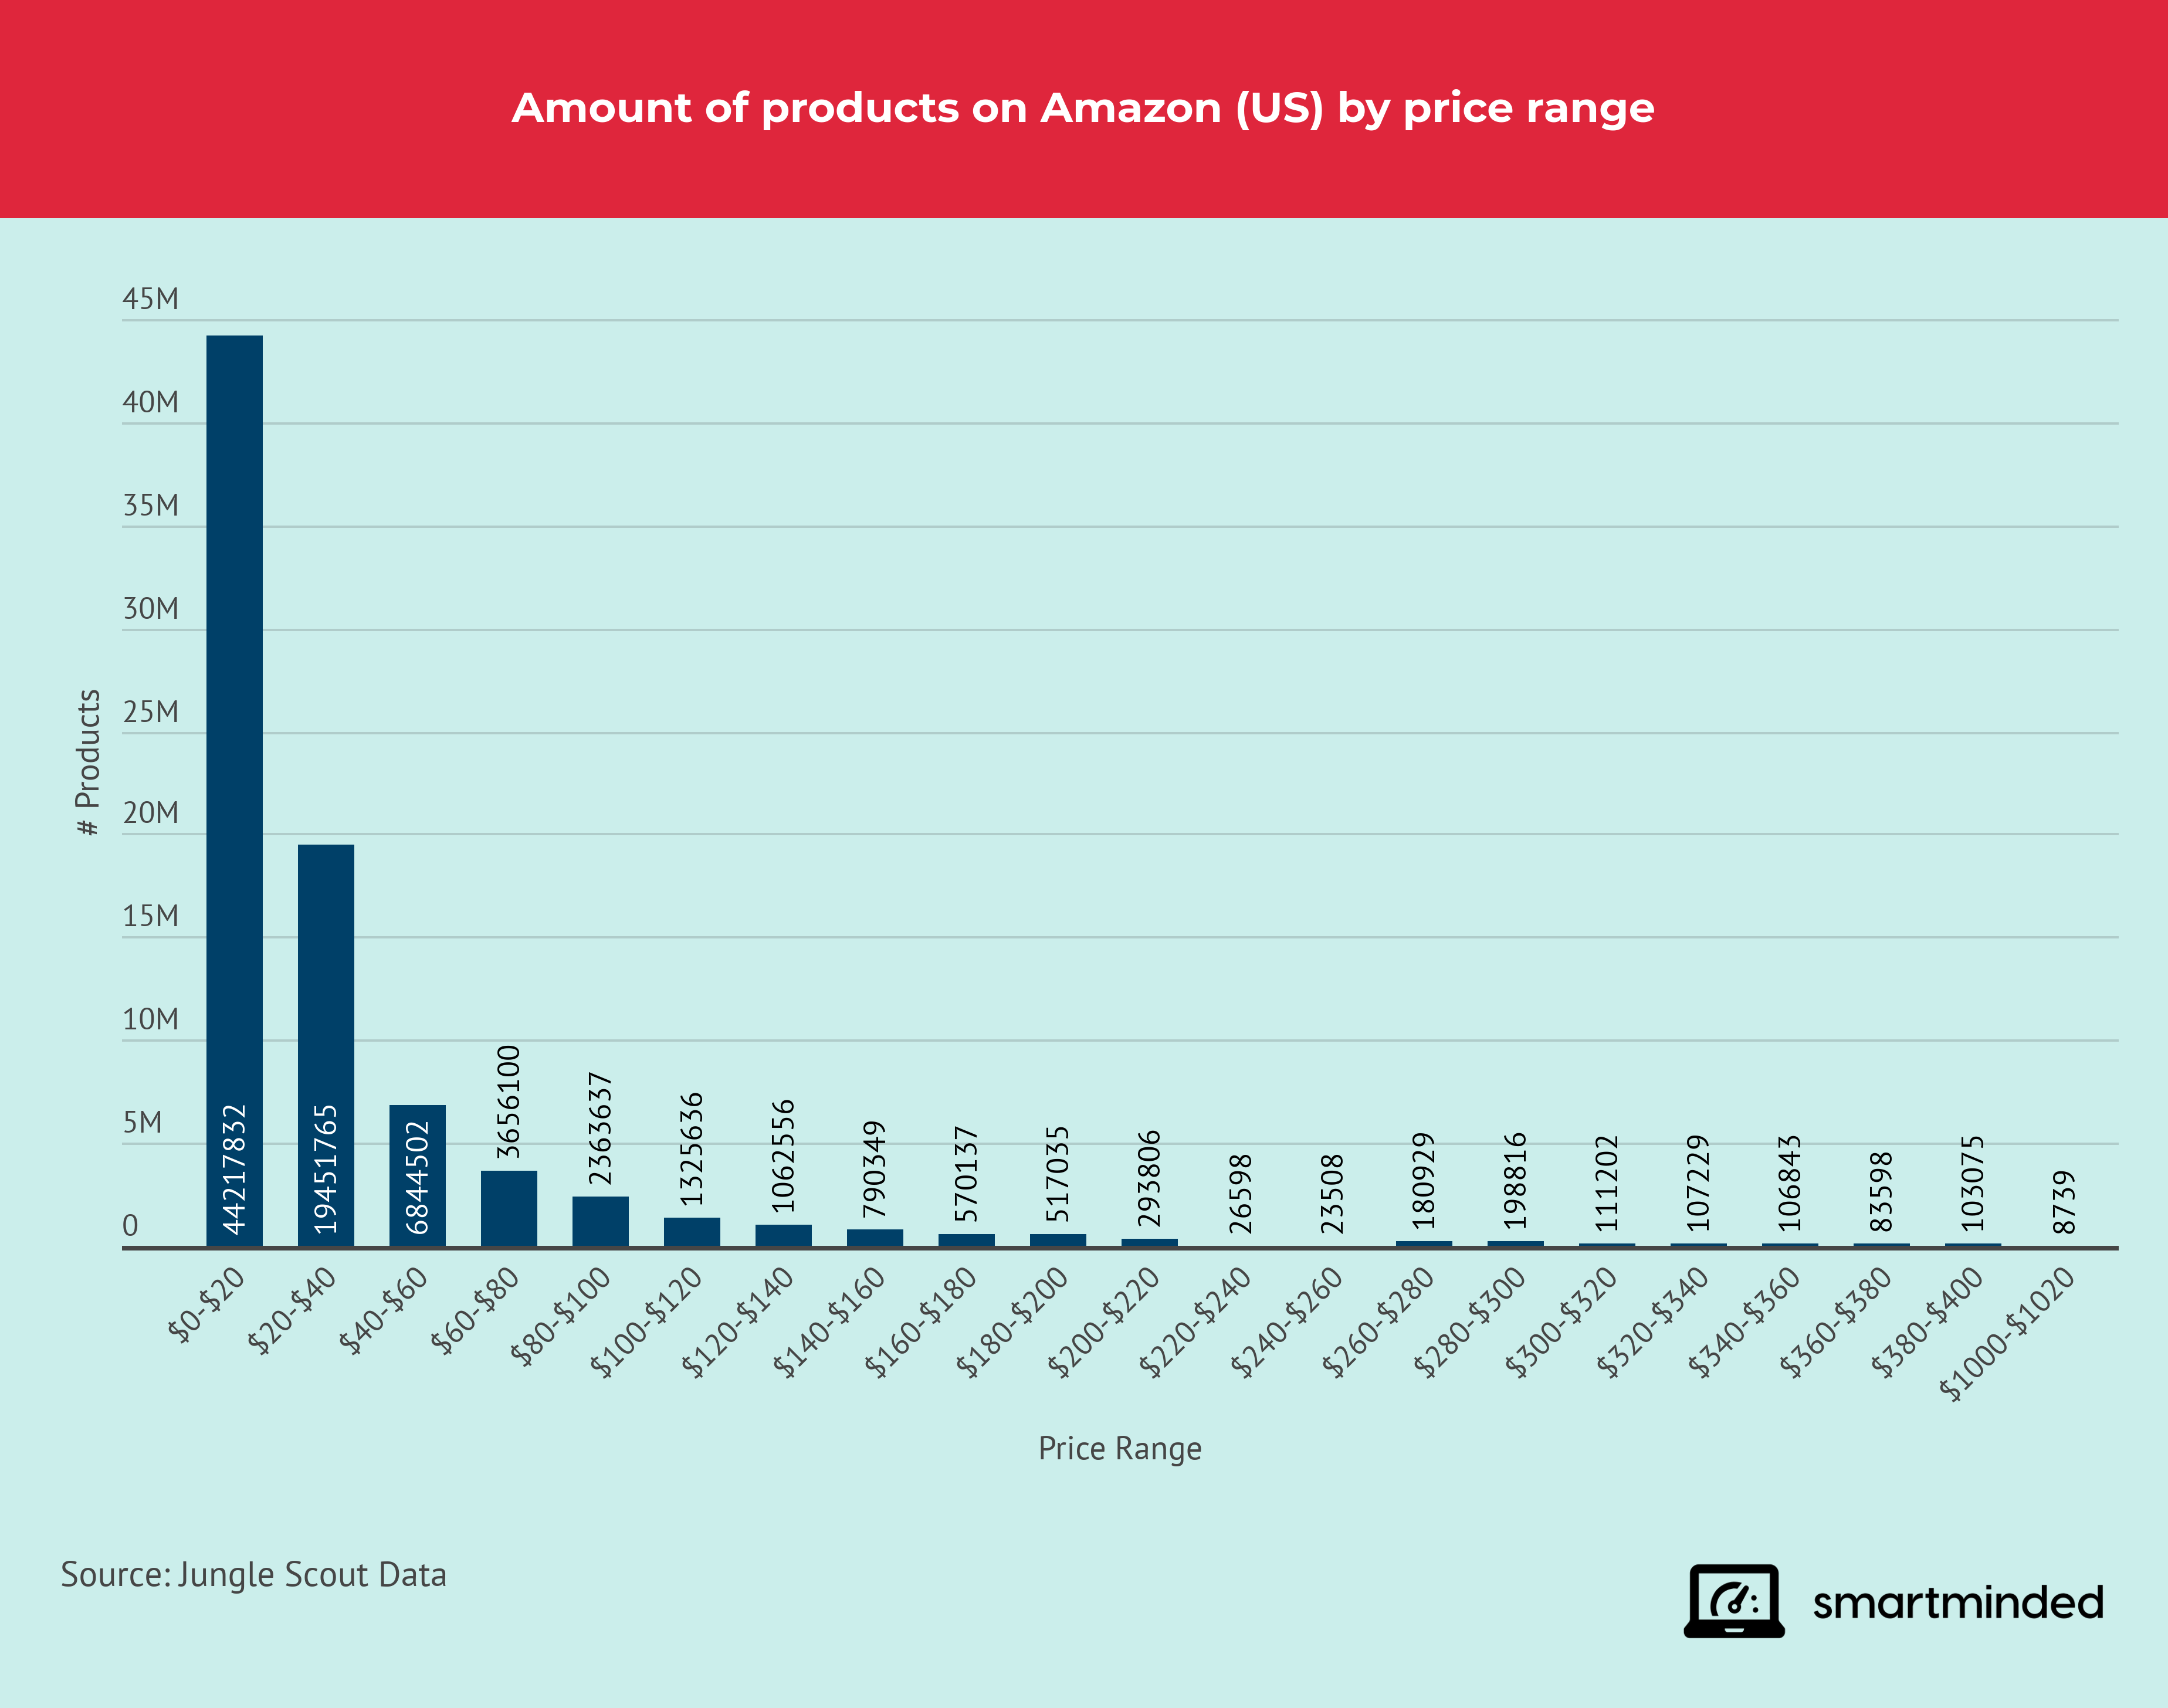 Amount of products on Amazon by Price Range